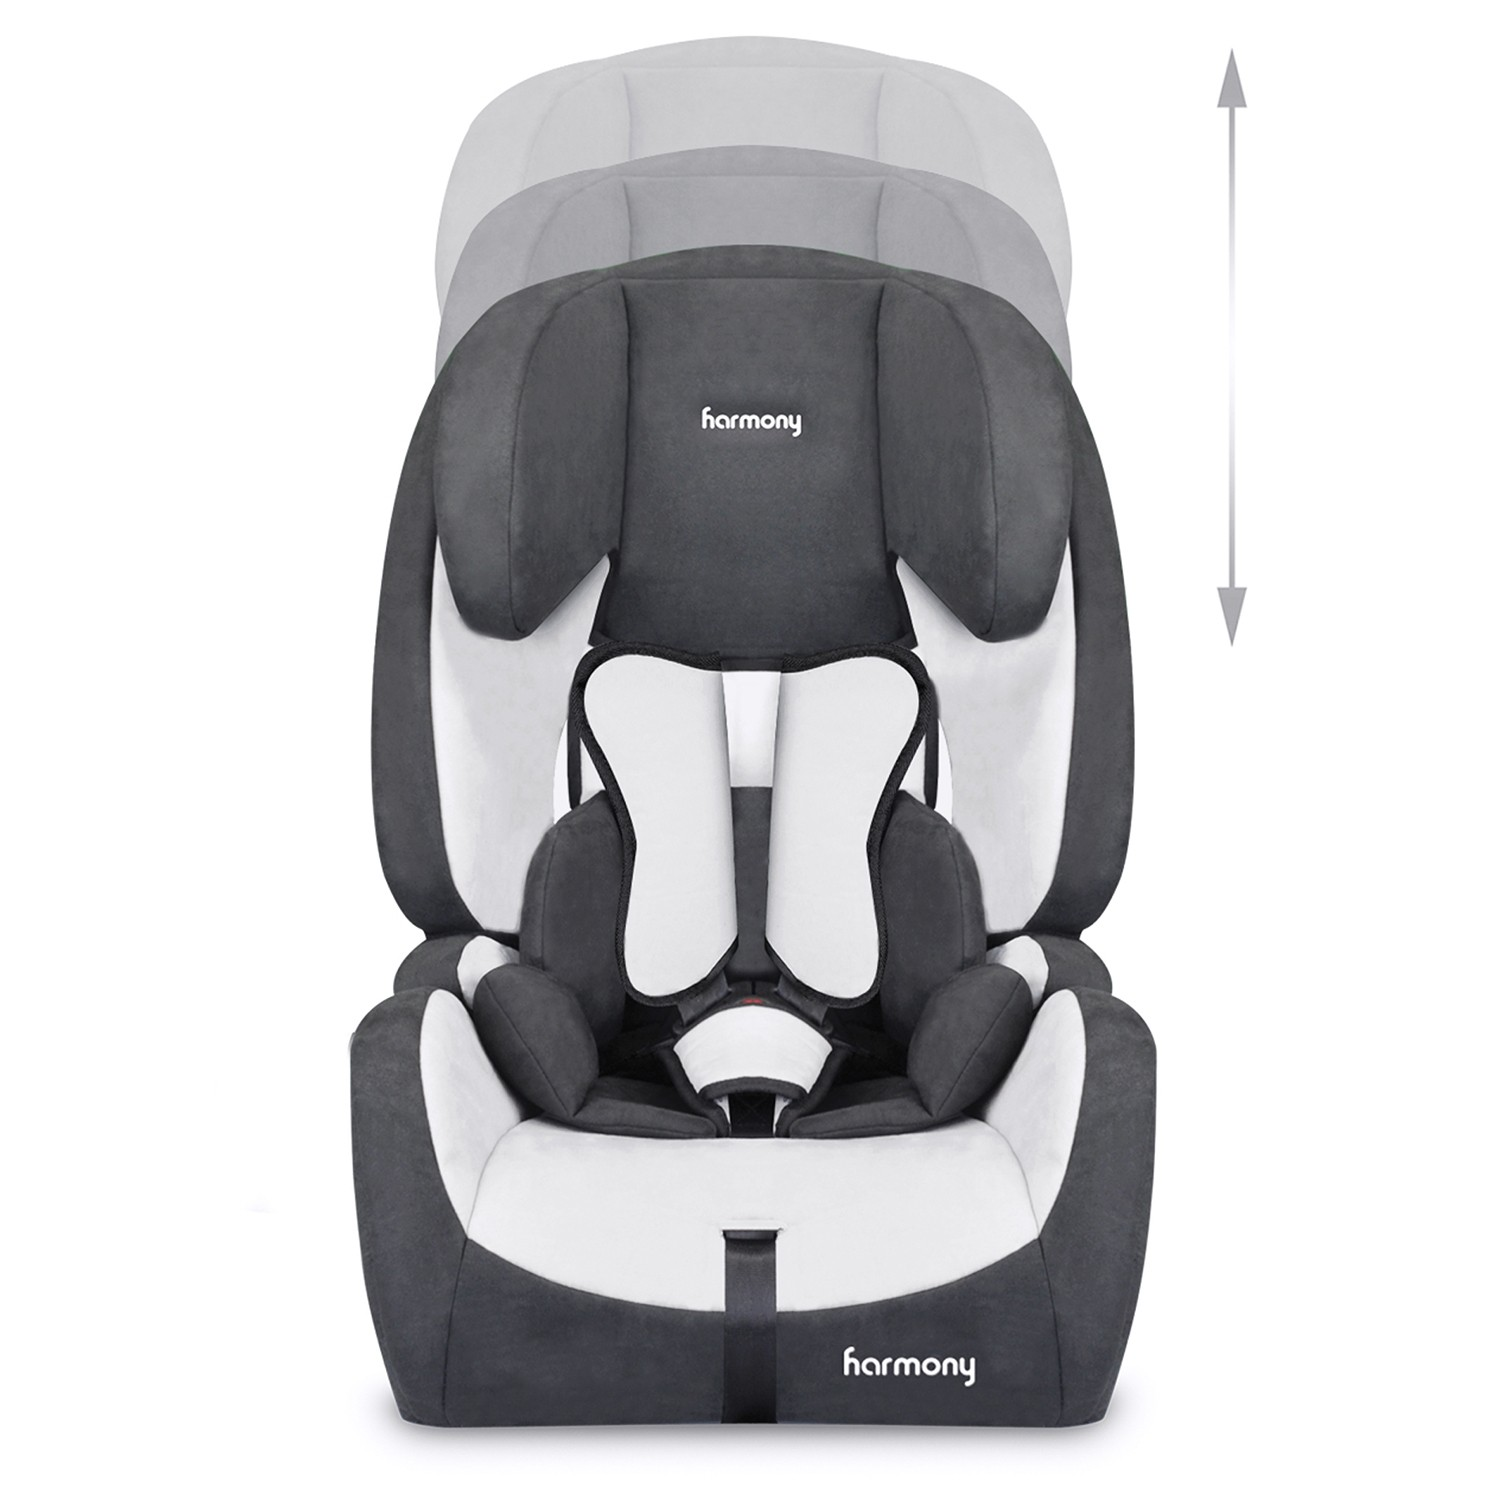 Genesys Deluxe Harnessed Booster Seat with Isofix